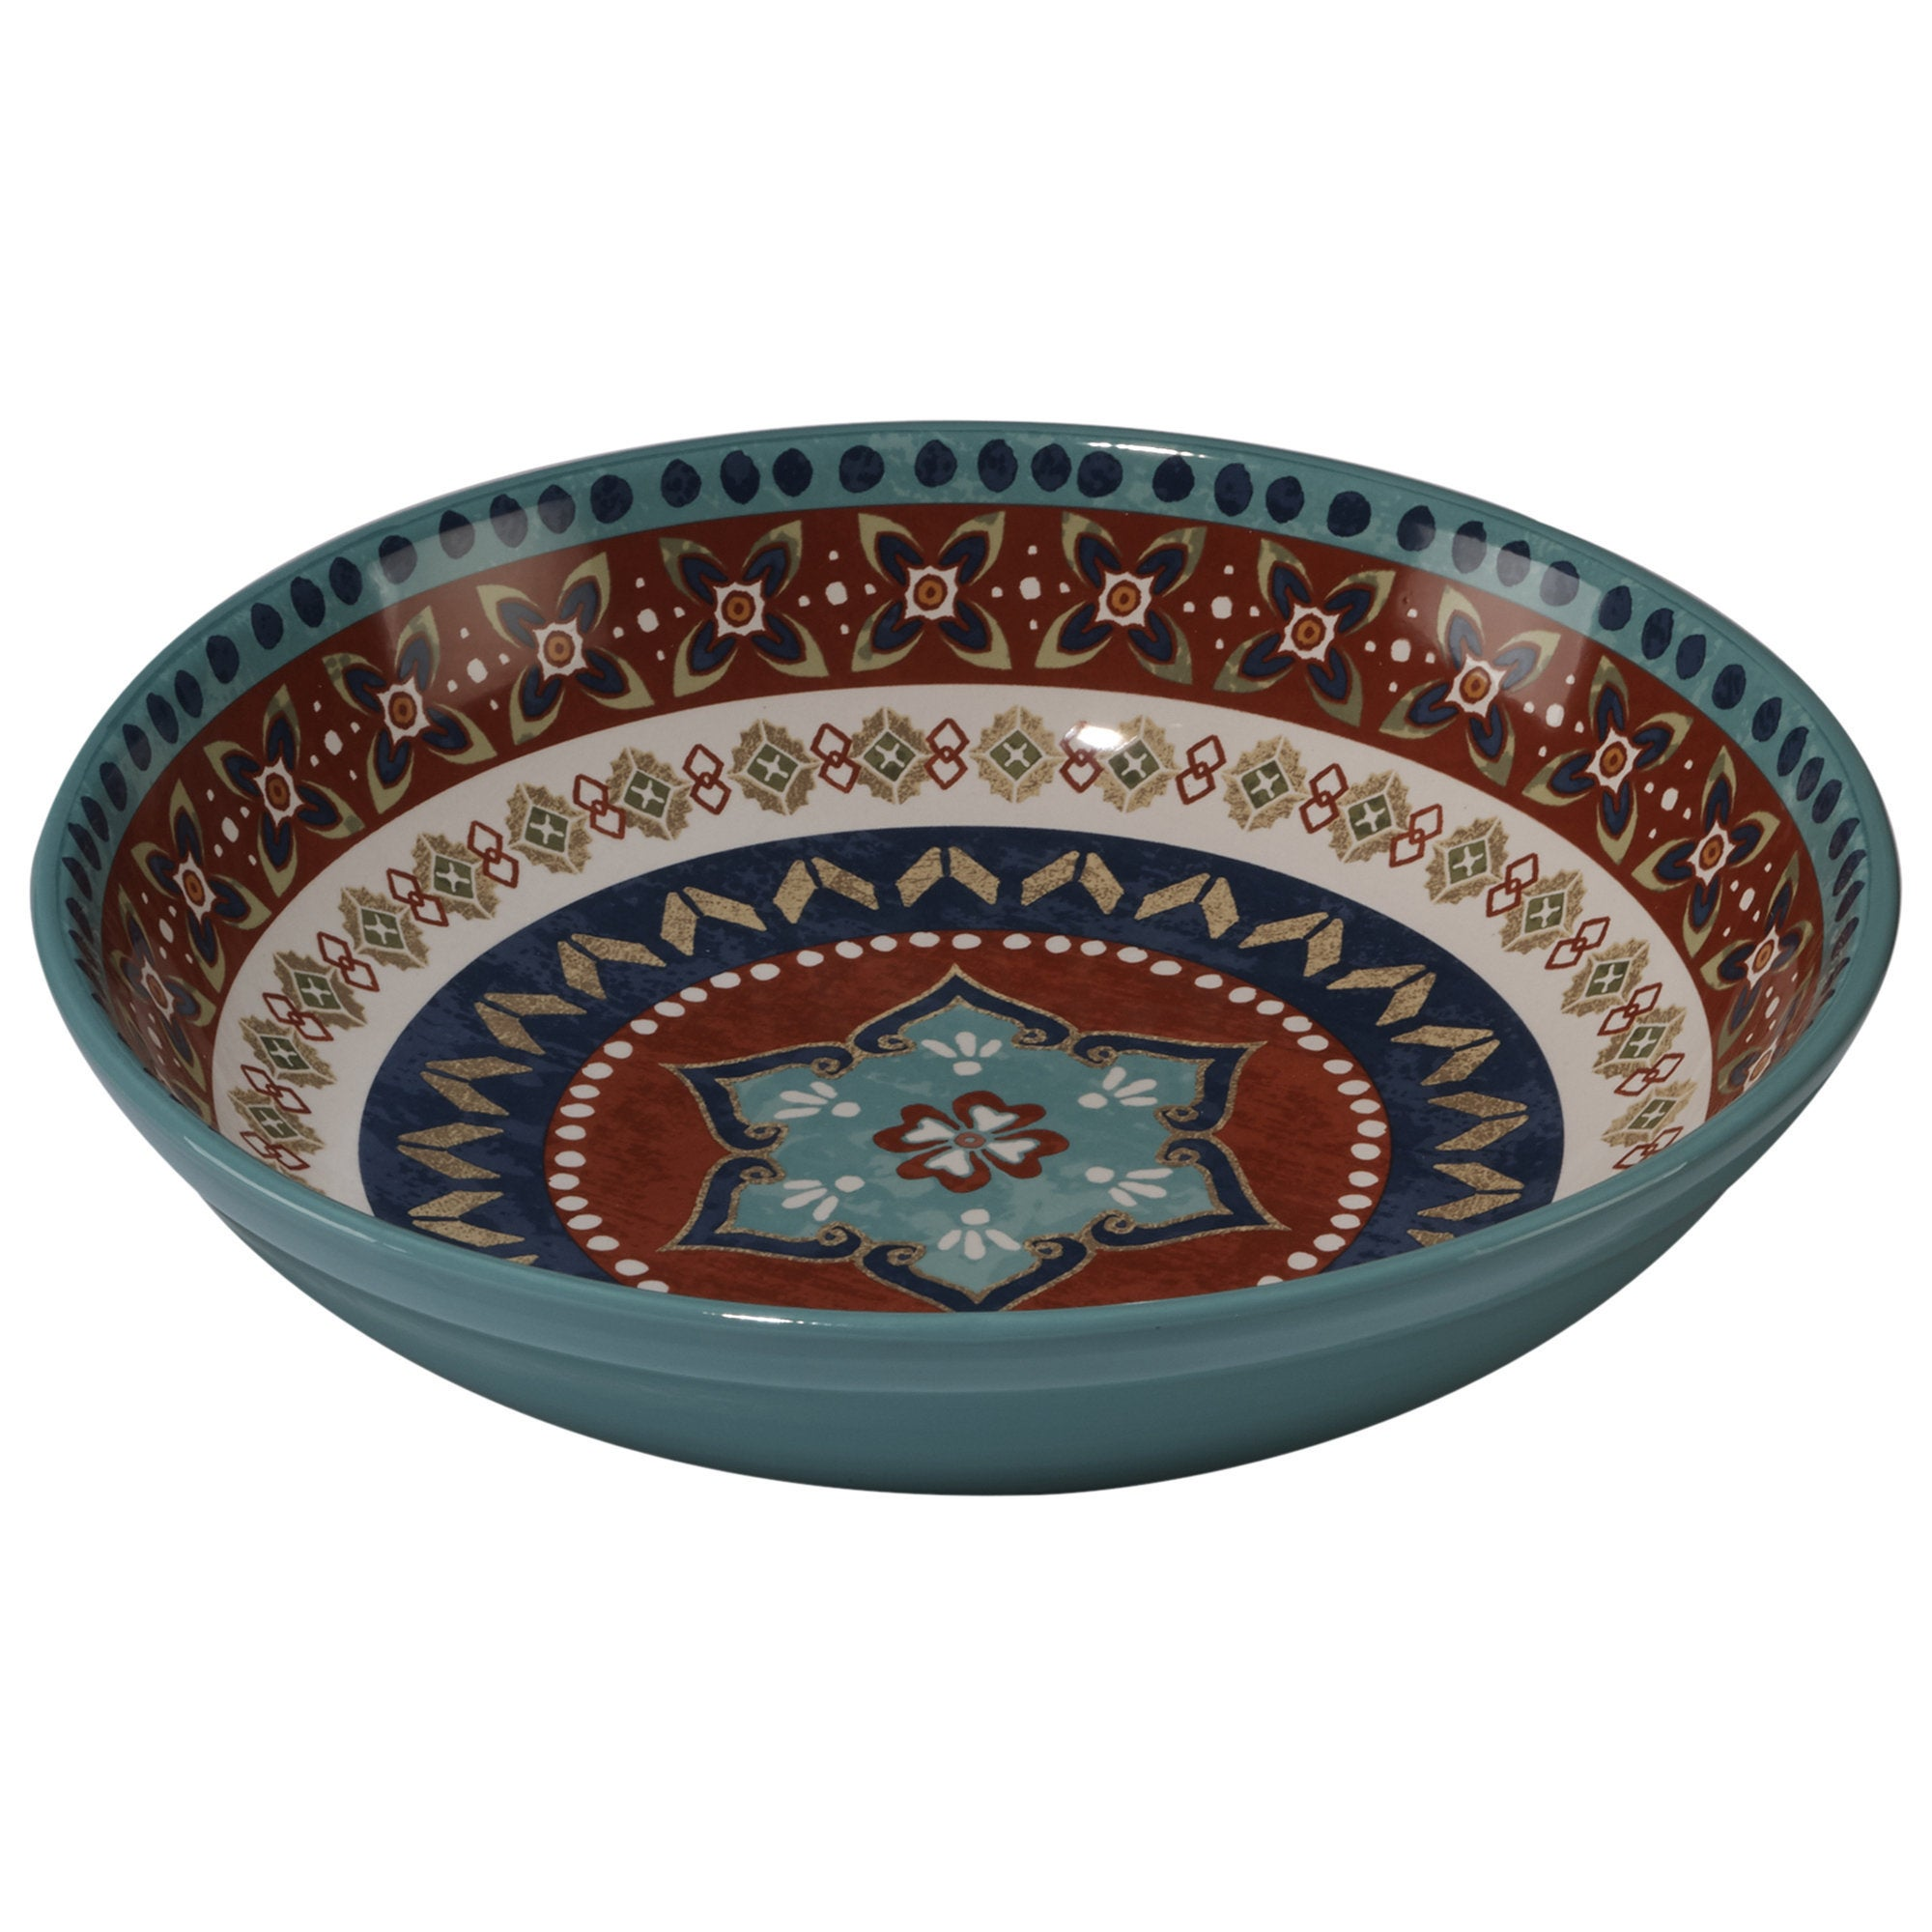 Certified International Veronique Charron Monterrey Ceramic 13 25 X 3 Inch Pasta Serving Bowl Overstock 14310371